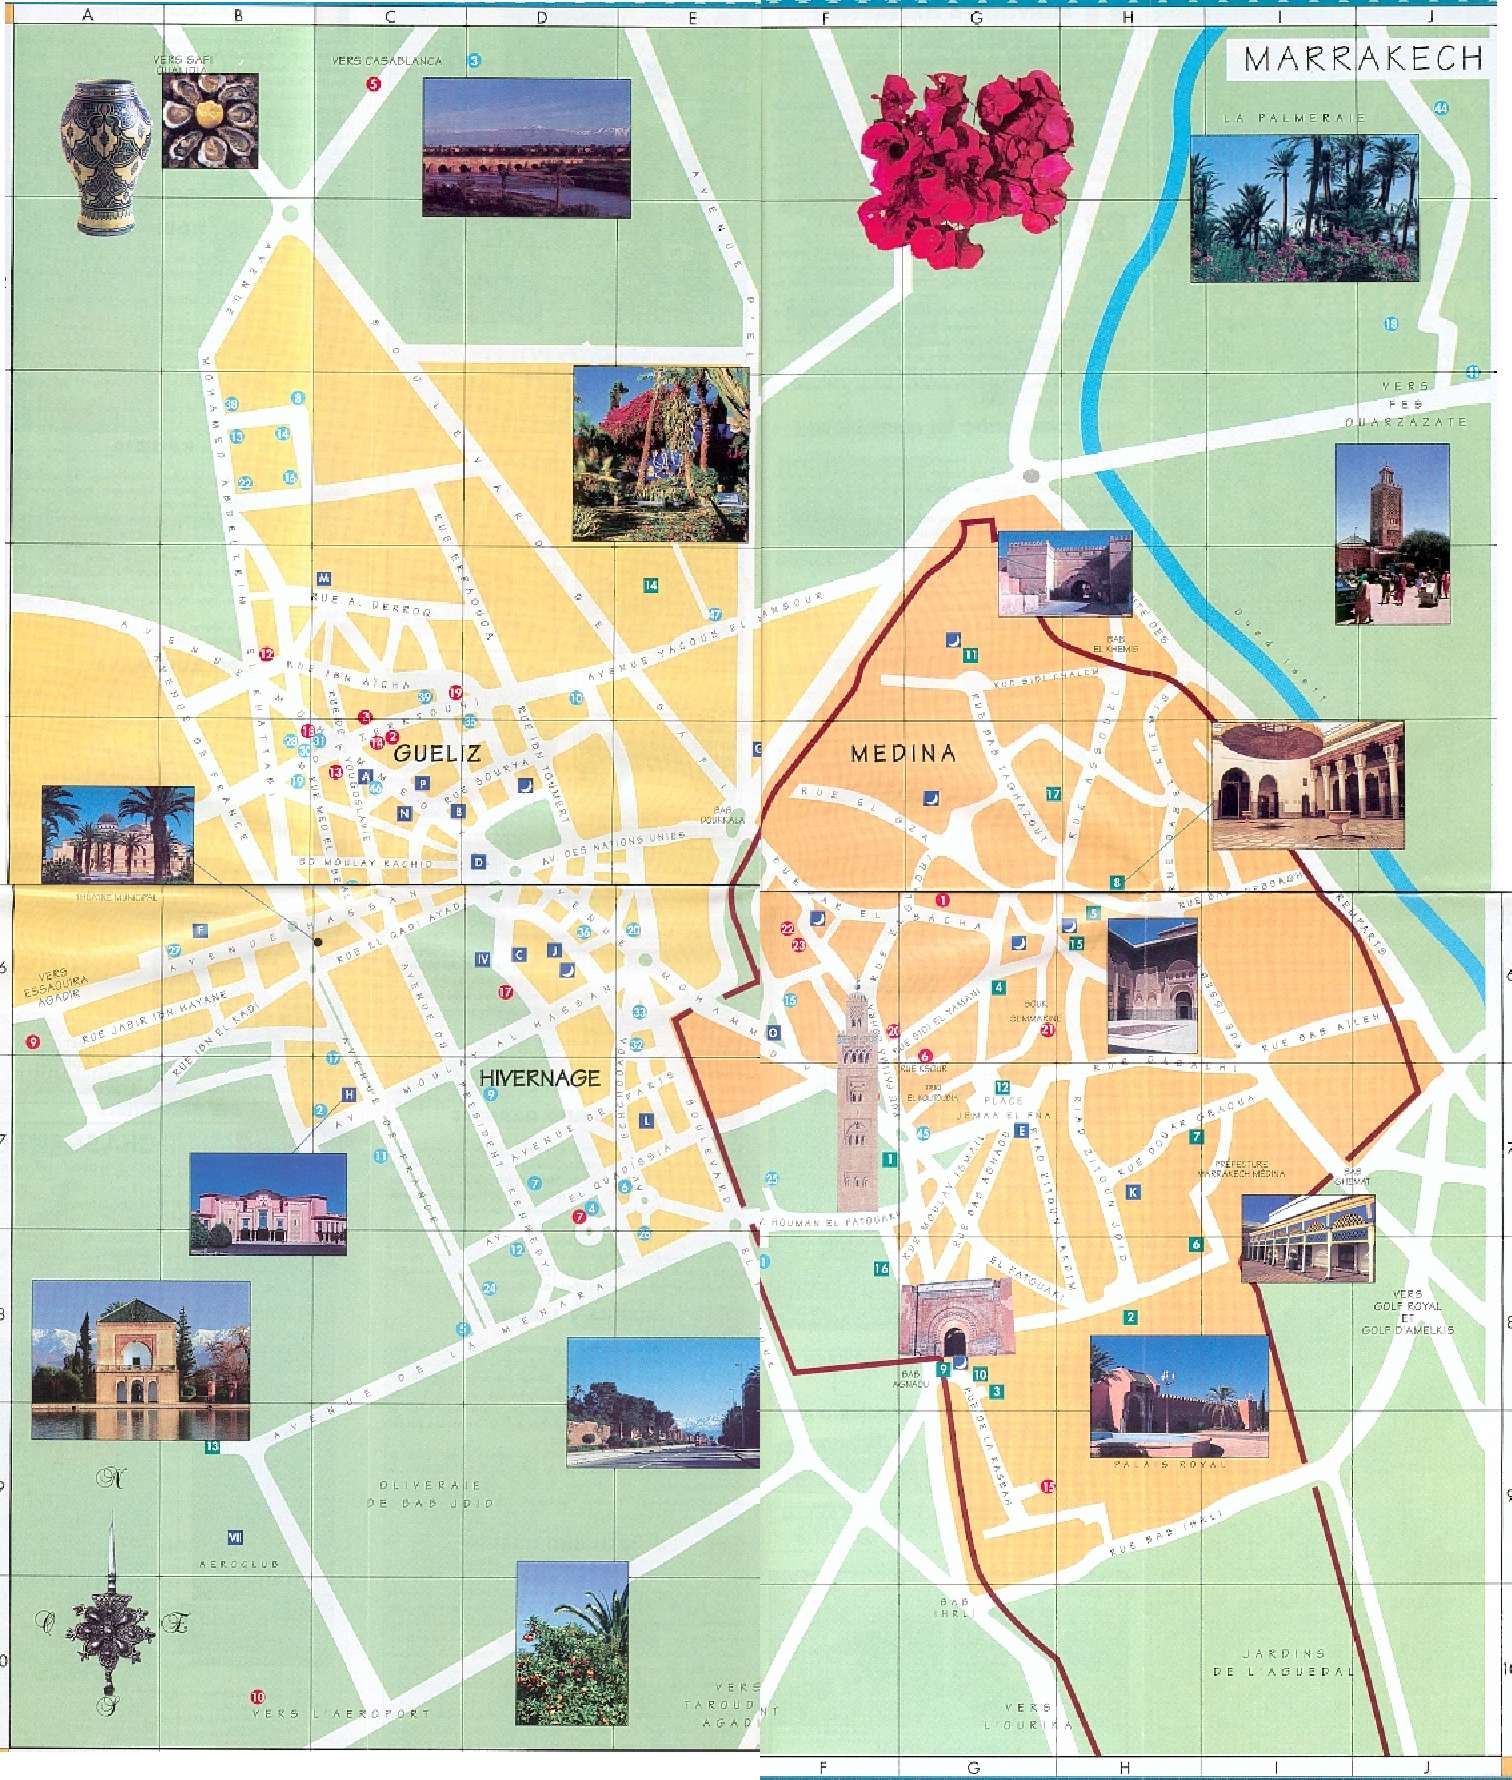 Marrakesh Tourist Map Marrakesh Morocco mappery